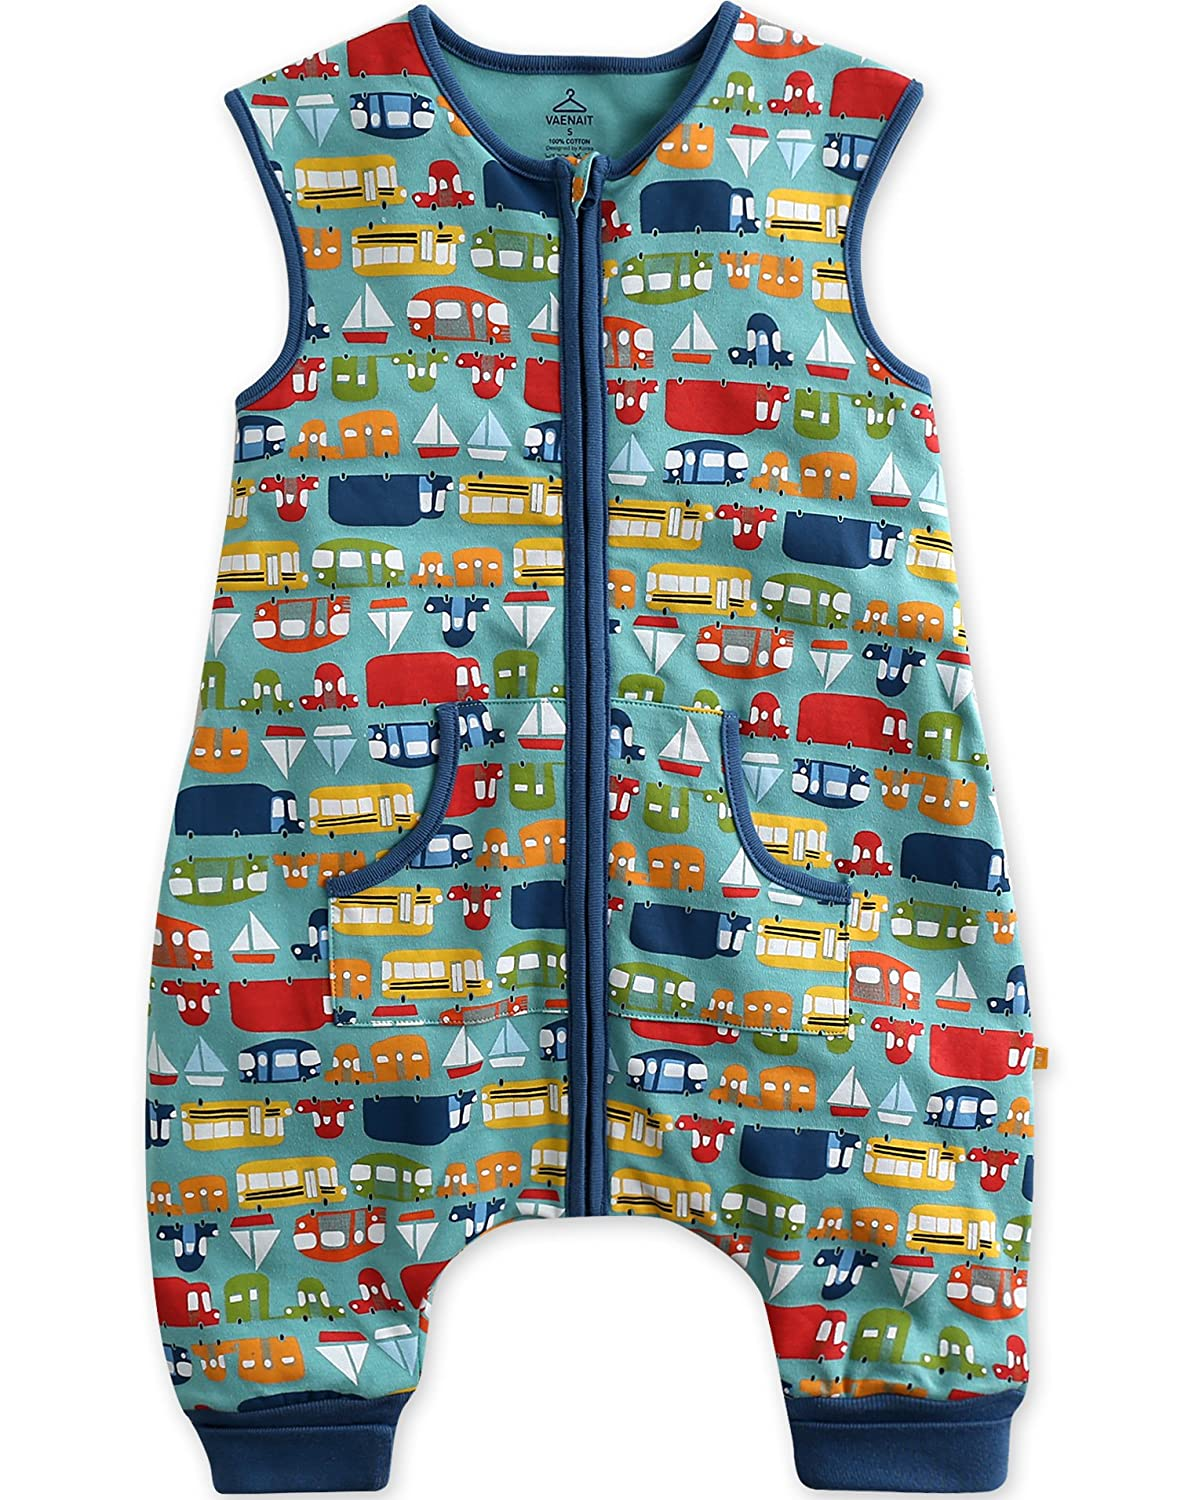 Vaenait baby 1-7Y Kid Double Layered Cotton Boys Wearable Blanket Sleeper Collection SS_075a